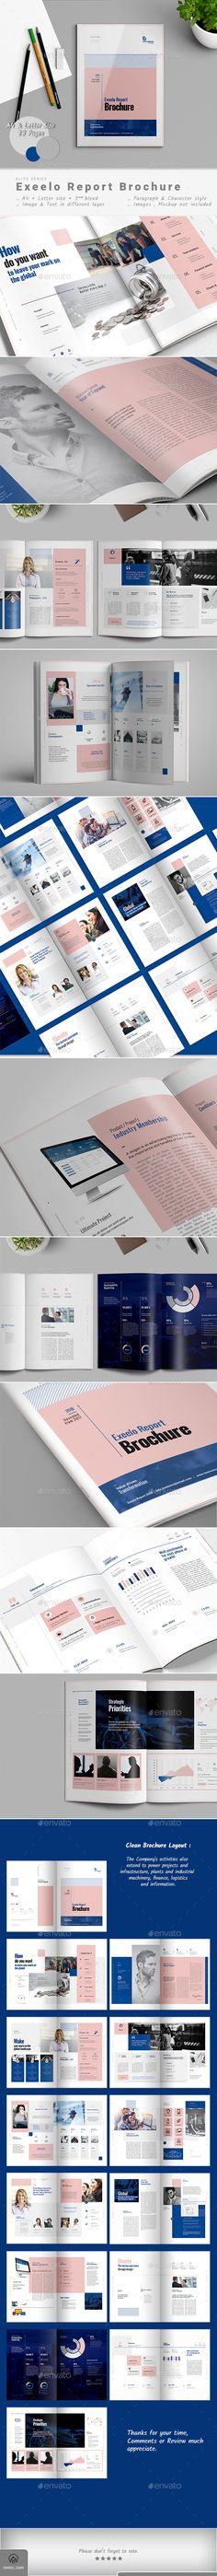 Annual Report Exeelo – Report Brochure are 28 Pages,both of A4 and Letter size. Visible Bold shapes, and cropped placeholder for photos.It has all the features you'd expect in a professional brochure template, from placeholders, to text styles, customizable infographics, and easy to edit master pages. Available in two different sizes A4 and US Letter.